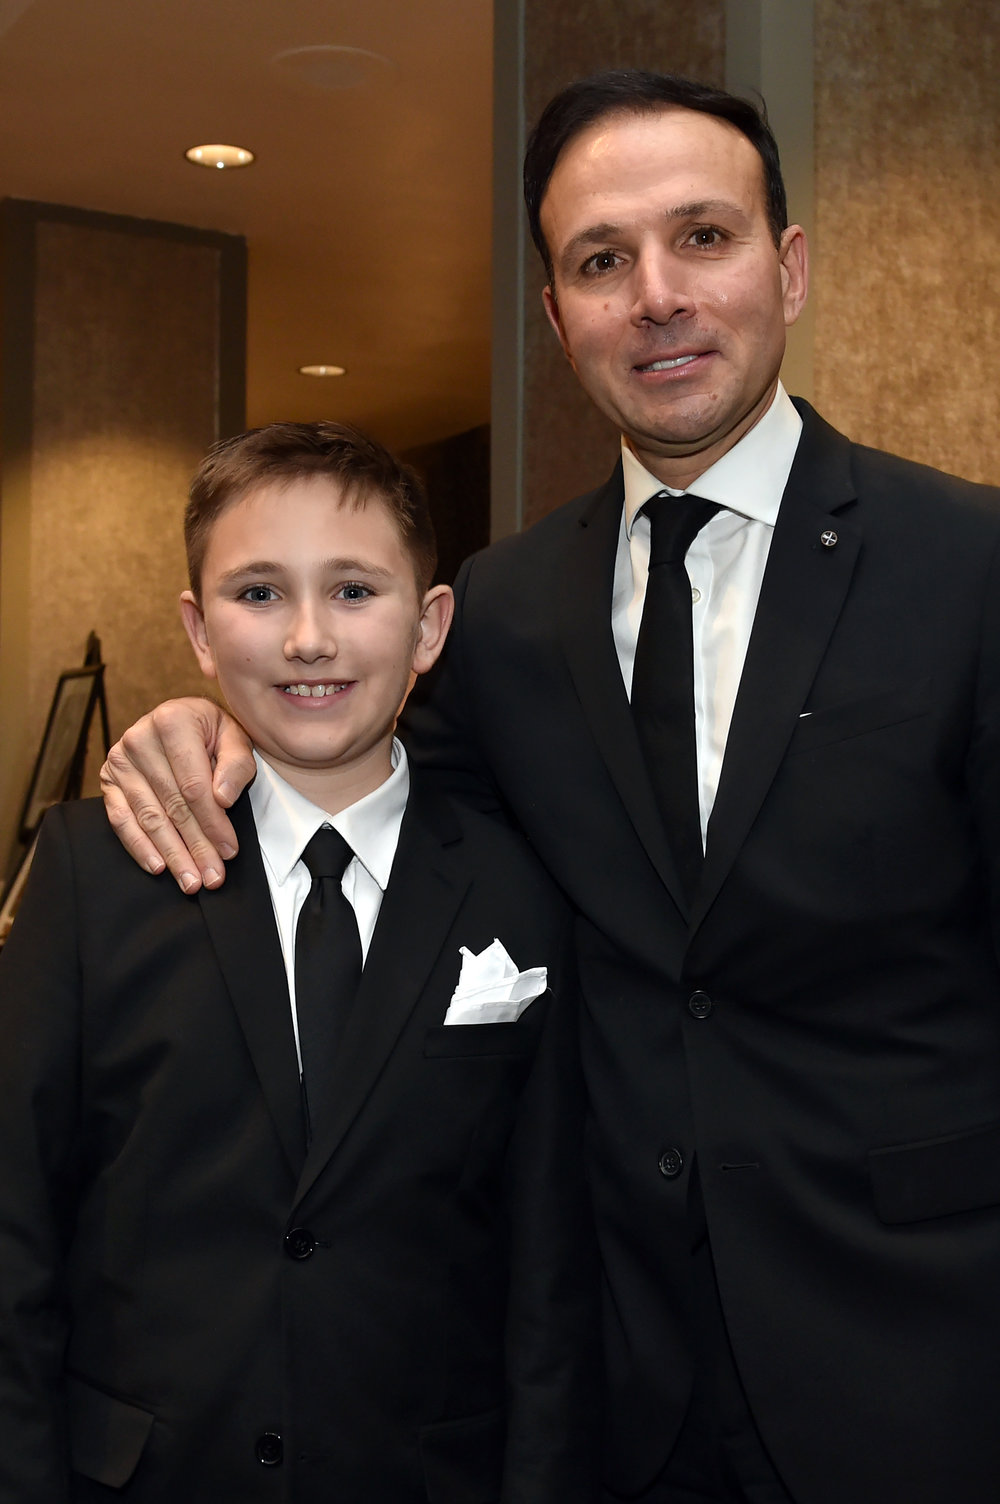 George Sifakis with his son